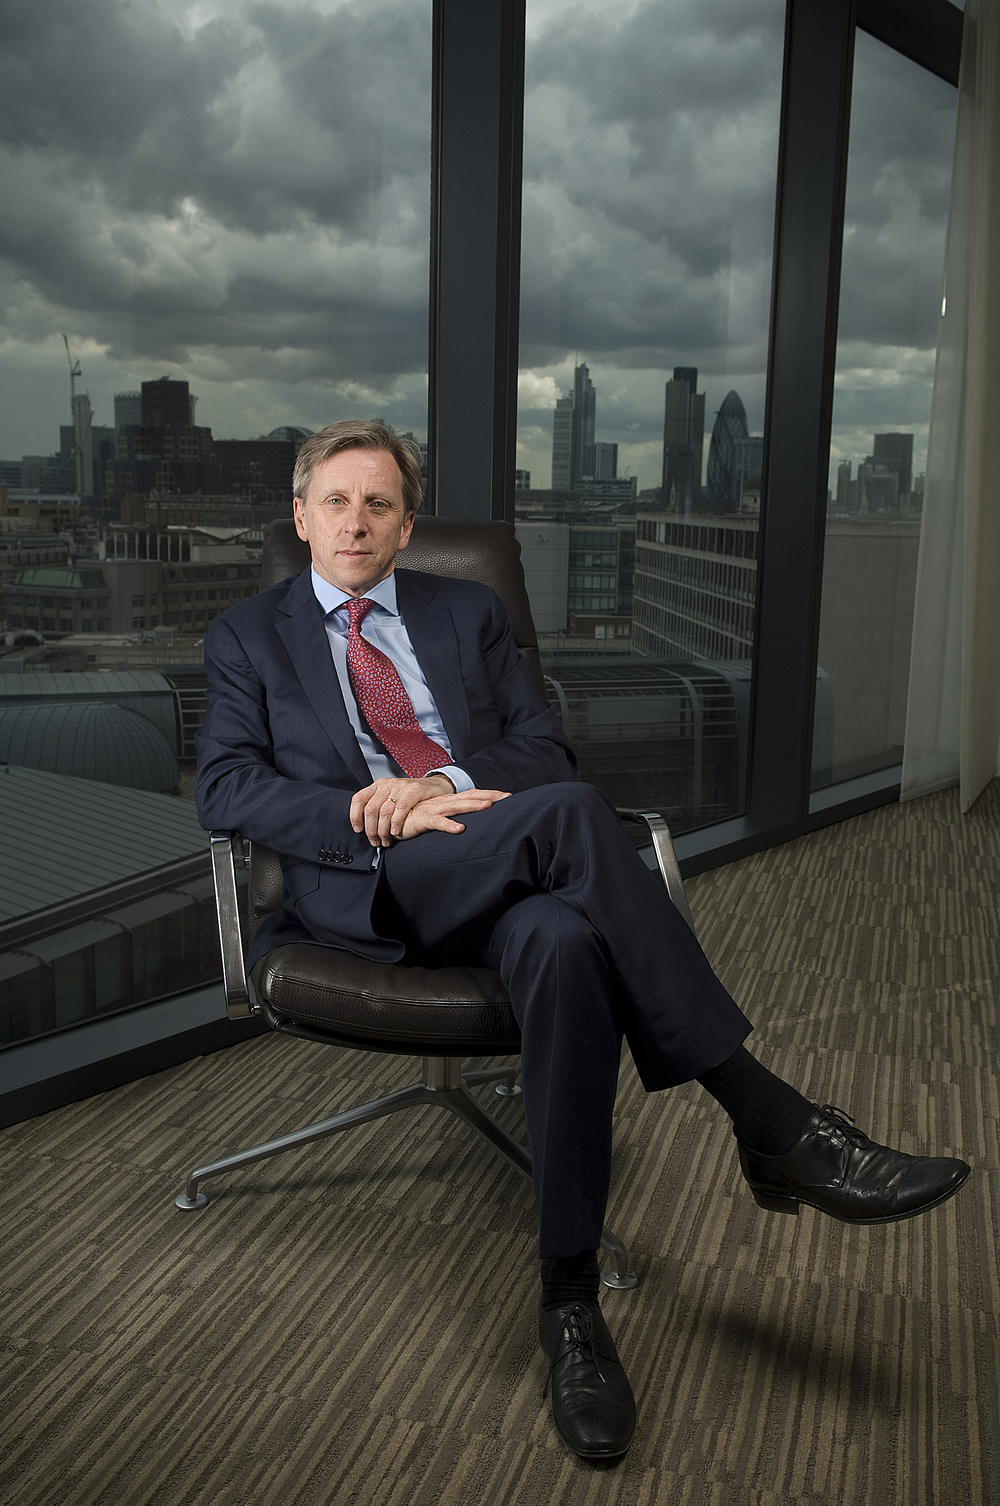 Corporate portrait of a business man in a suit sitting cross legged in front of a london skyline